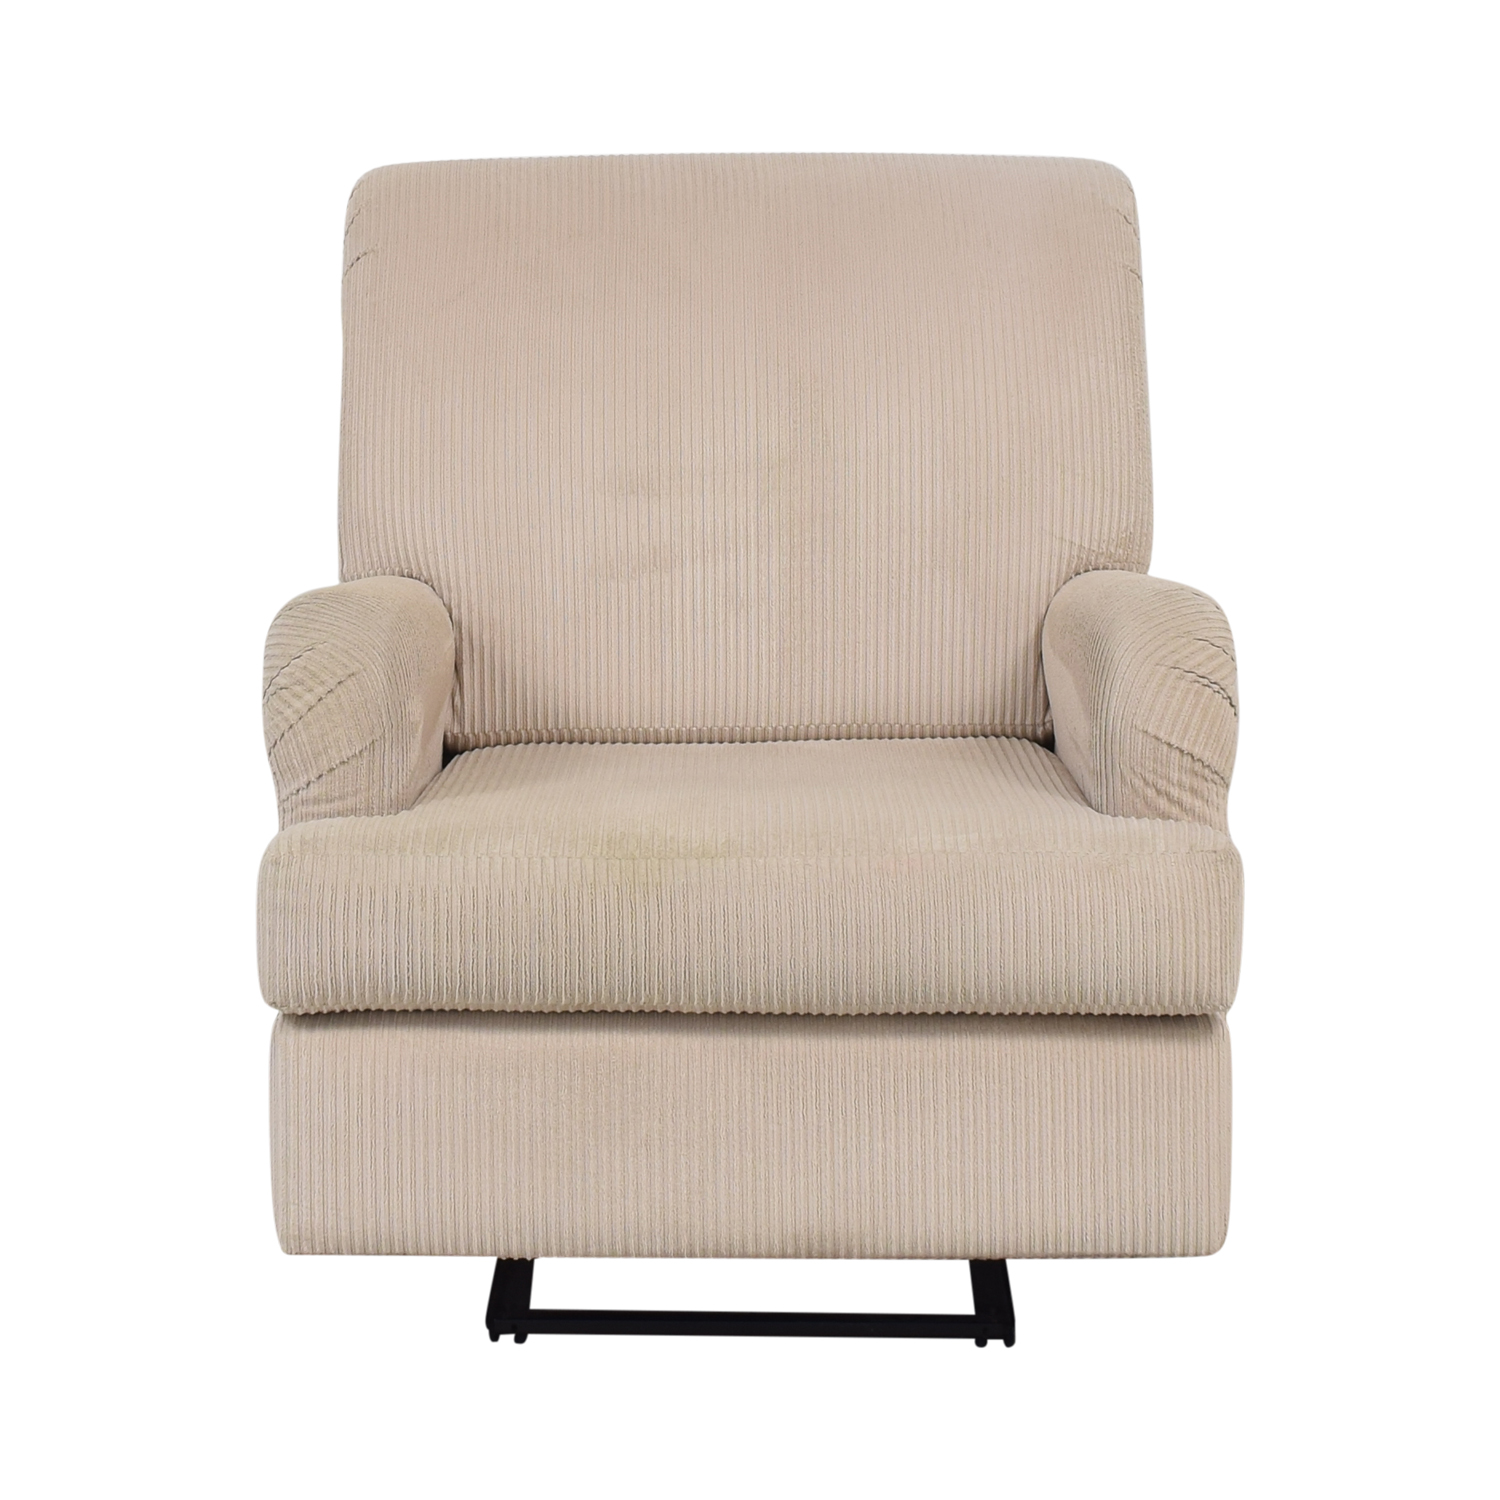 Newco International Chic Glider / Chairs